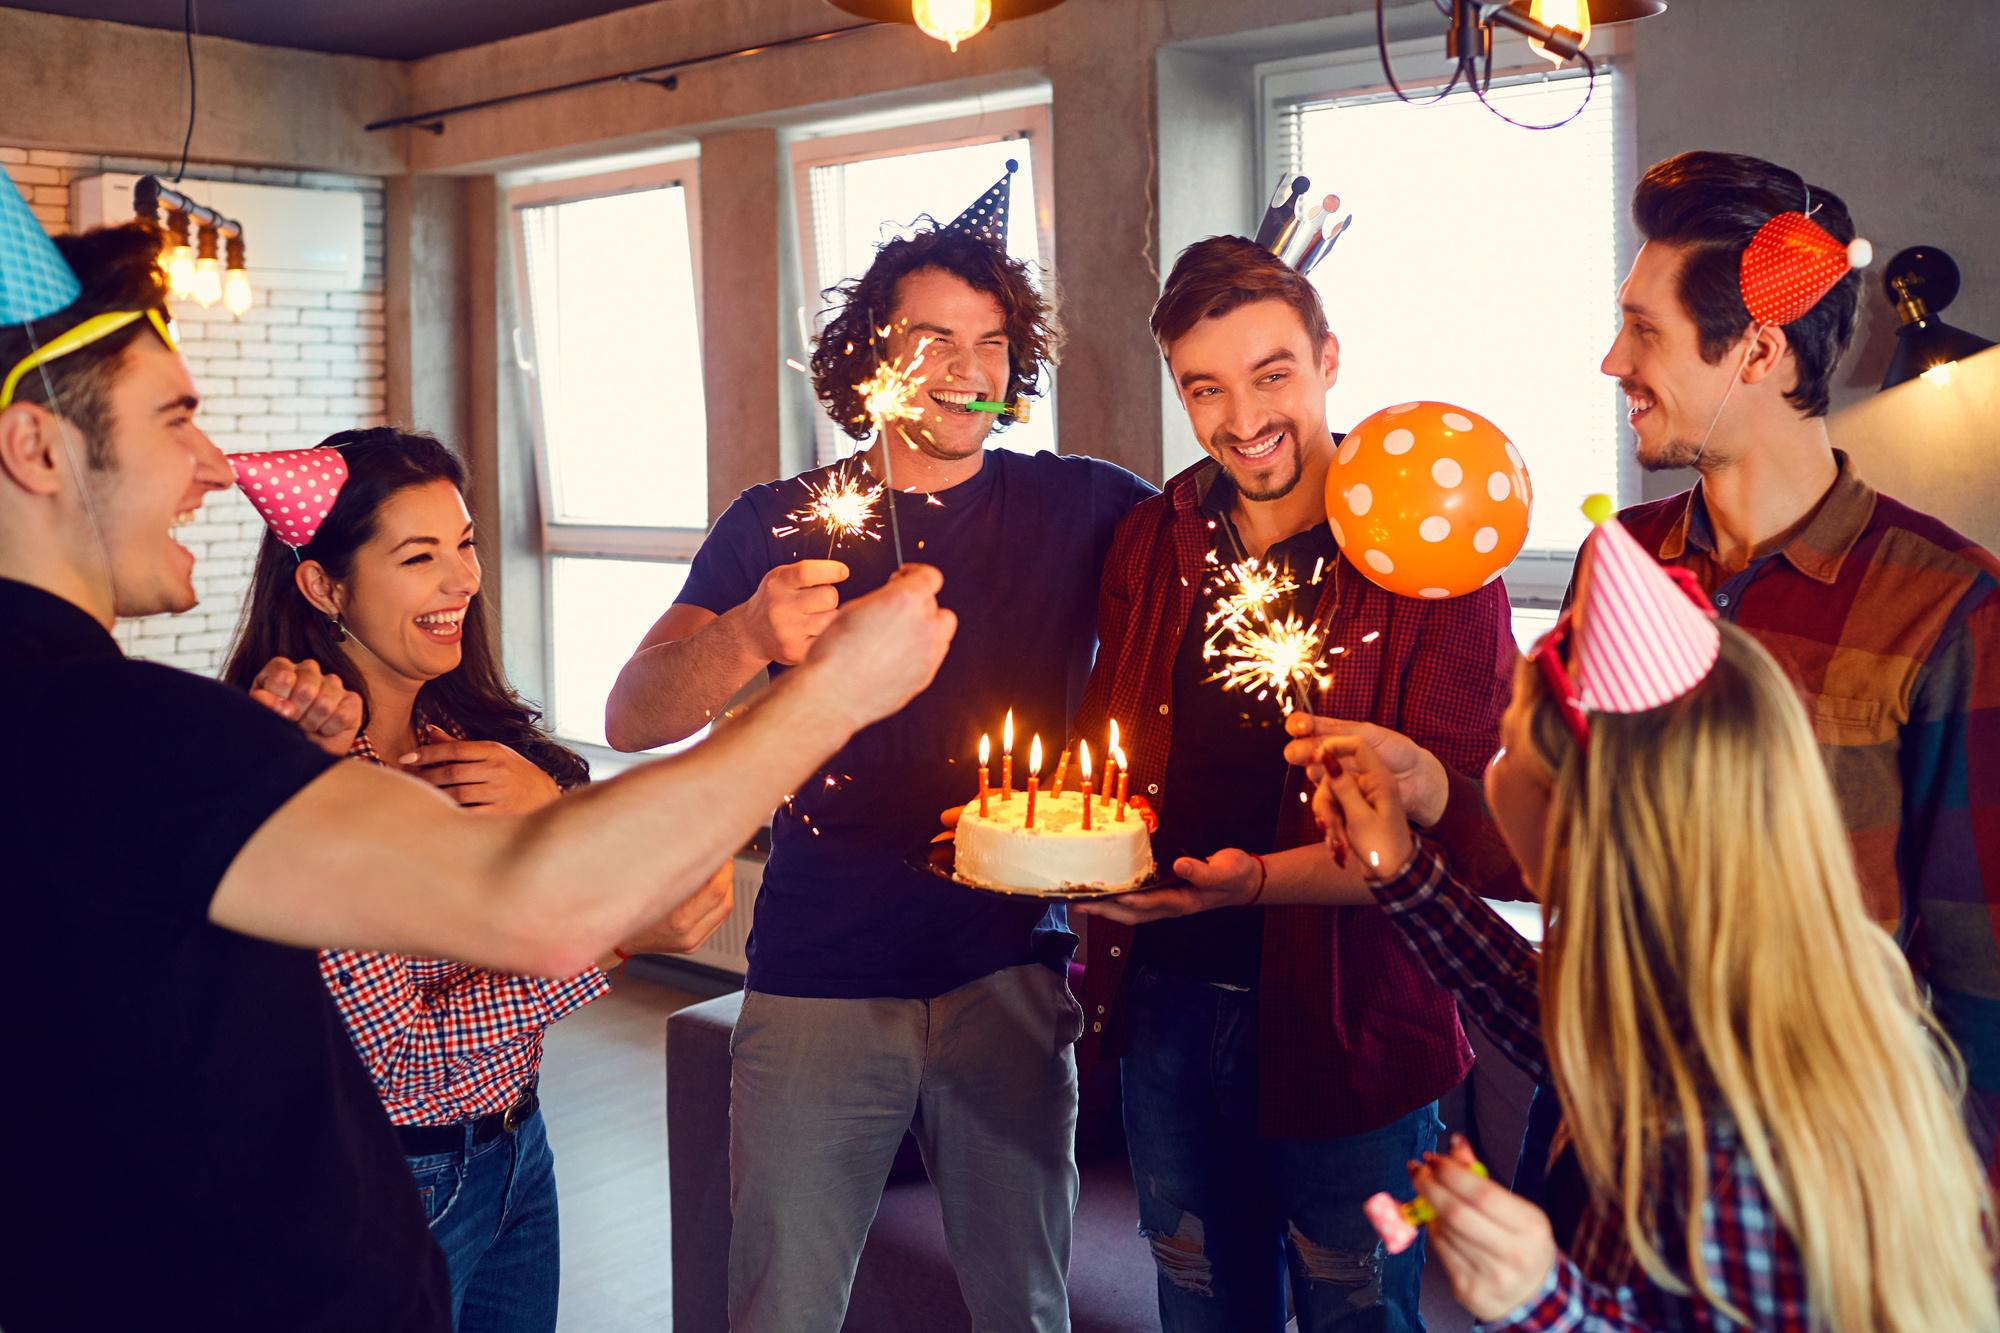 Out of Nowhere: 4 Surprise Party Ideas